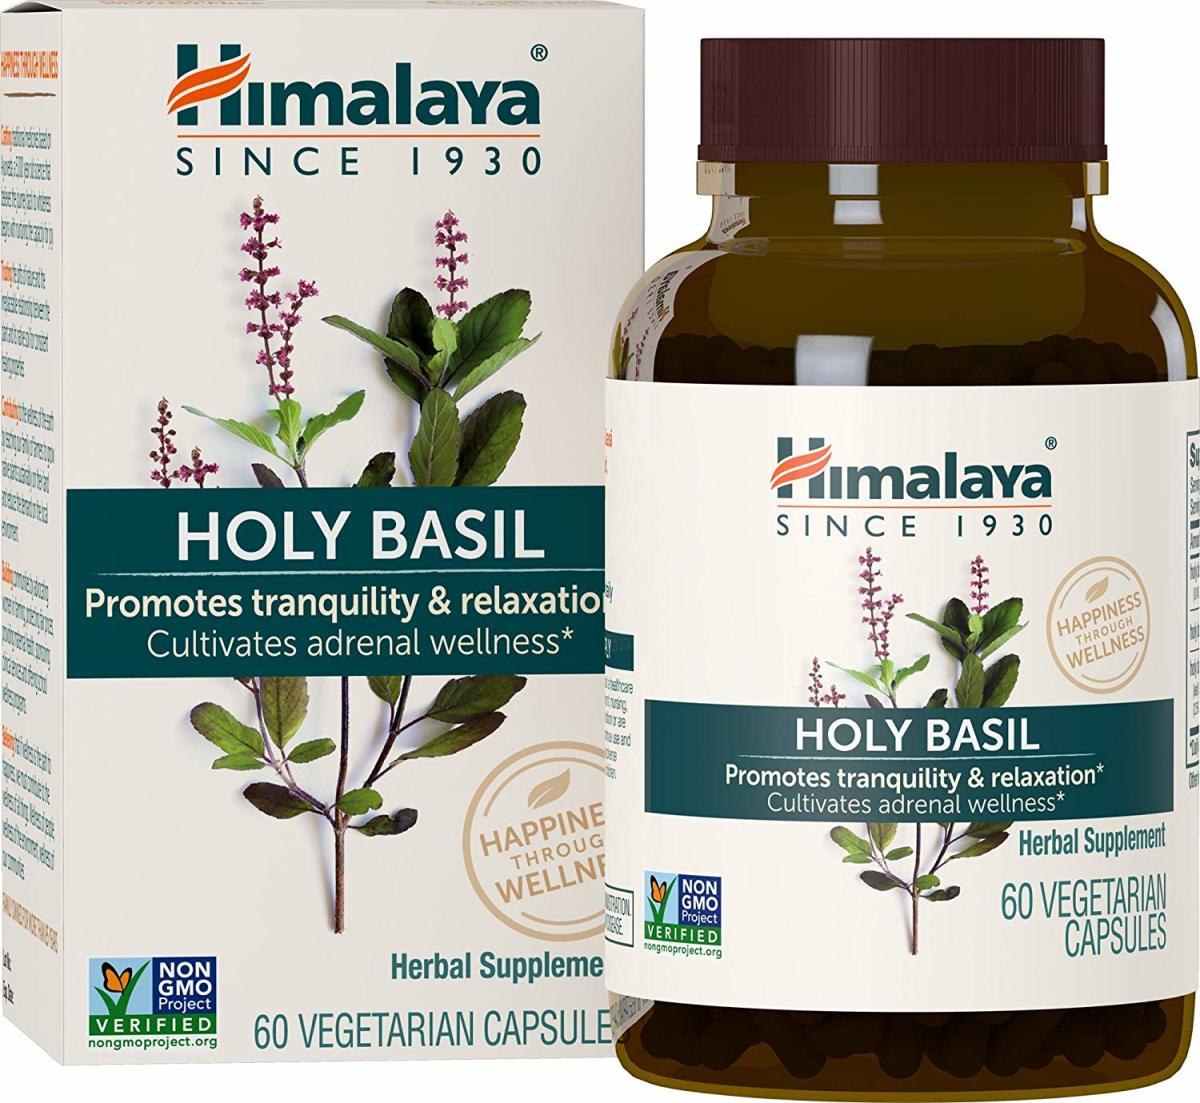 Holy basil capsules manufactured by Himalaya Herbal Pharmaceuticals, India.